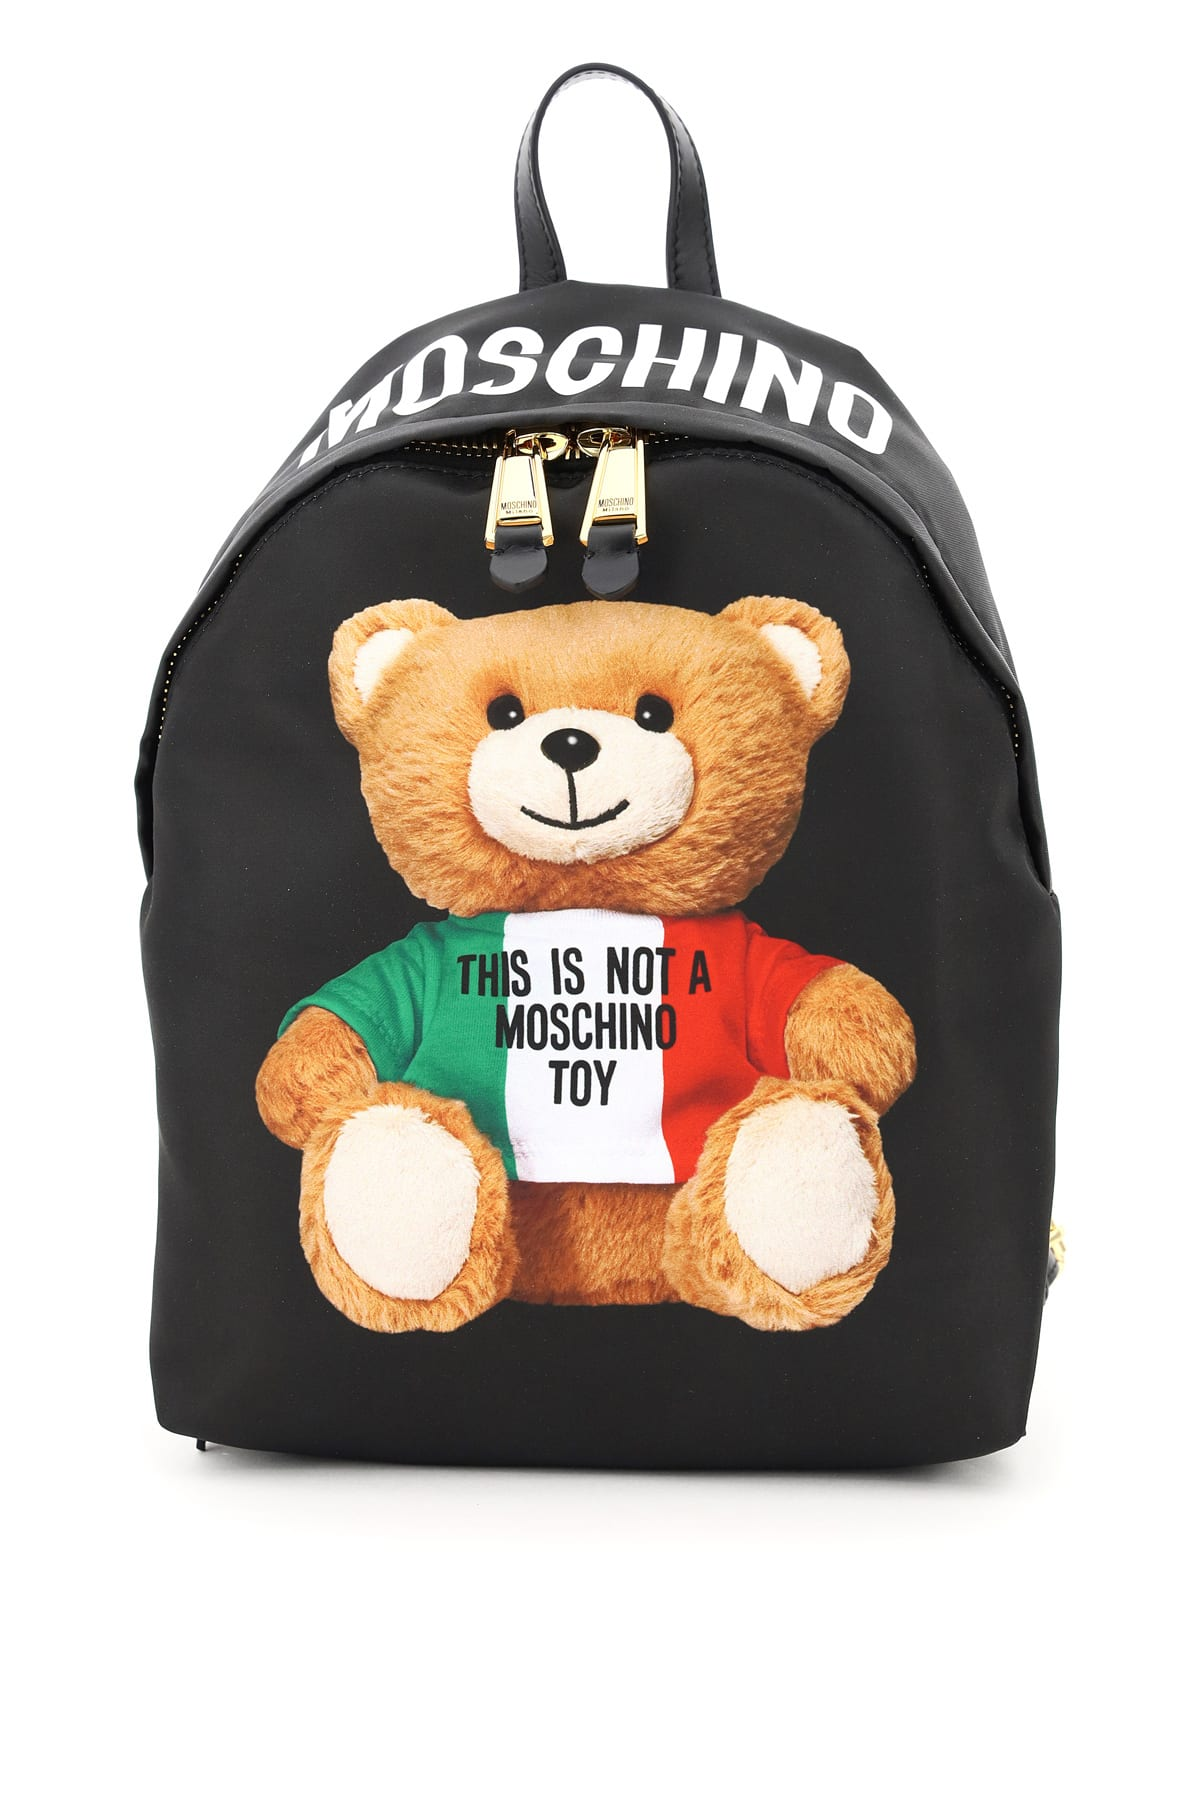 MOSCHINO BACKPACK WITH ITALIAN TEDDY BEAR PRINT